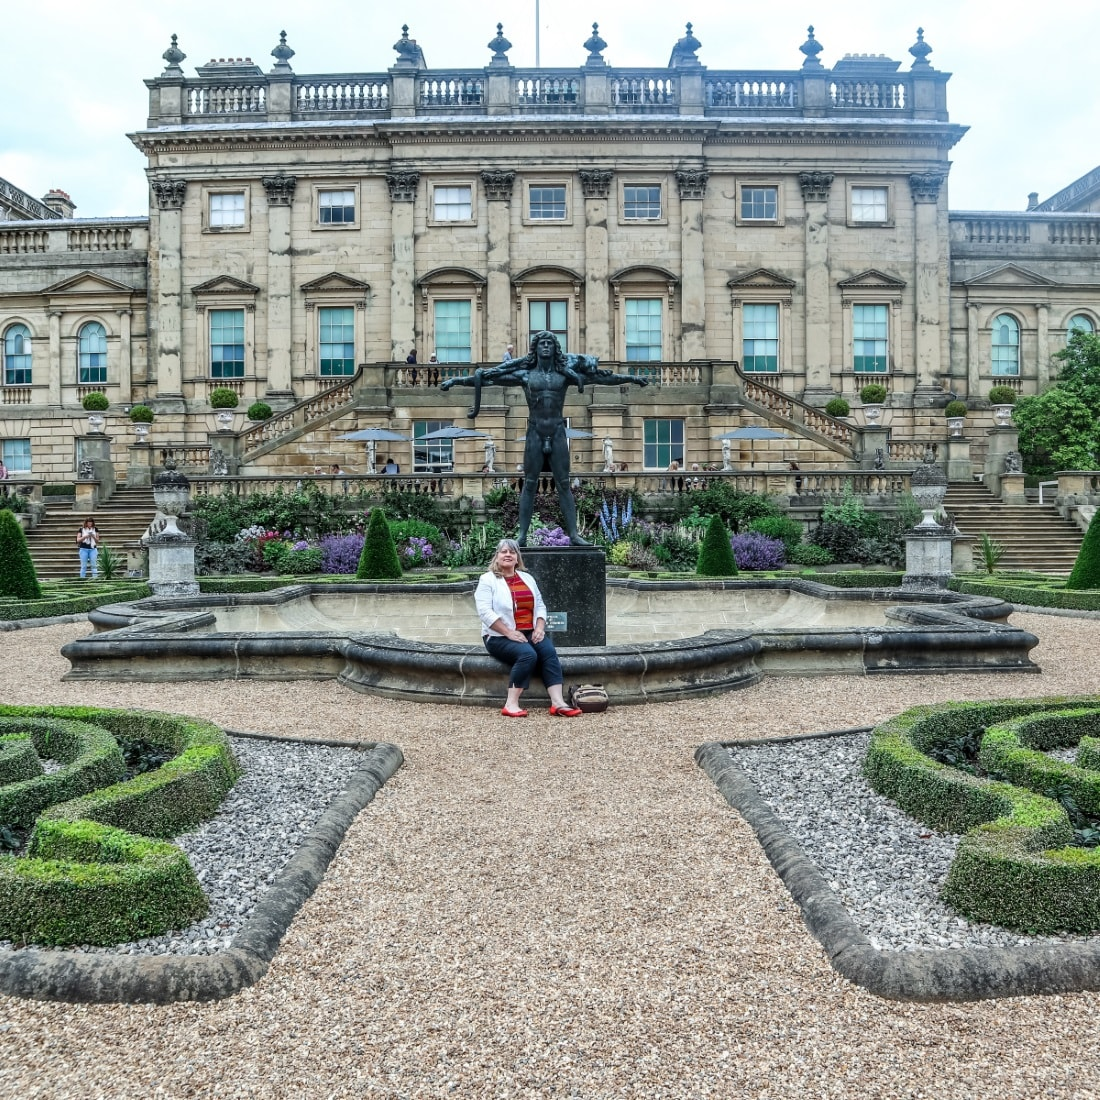 VISITING THE TERRACE AT hAREWOOD hOUSE